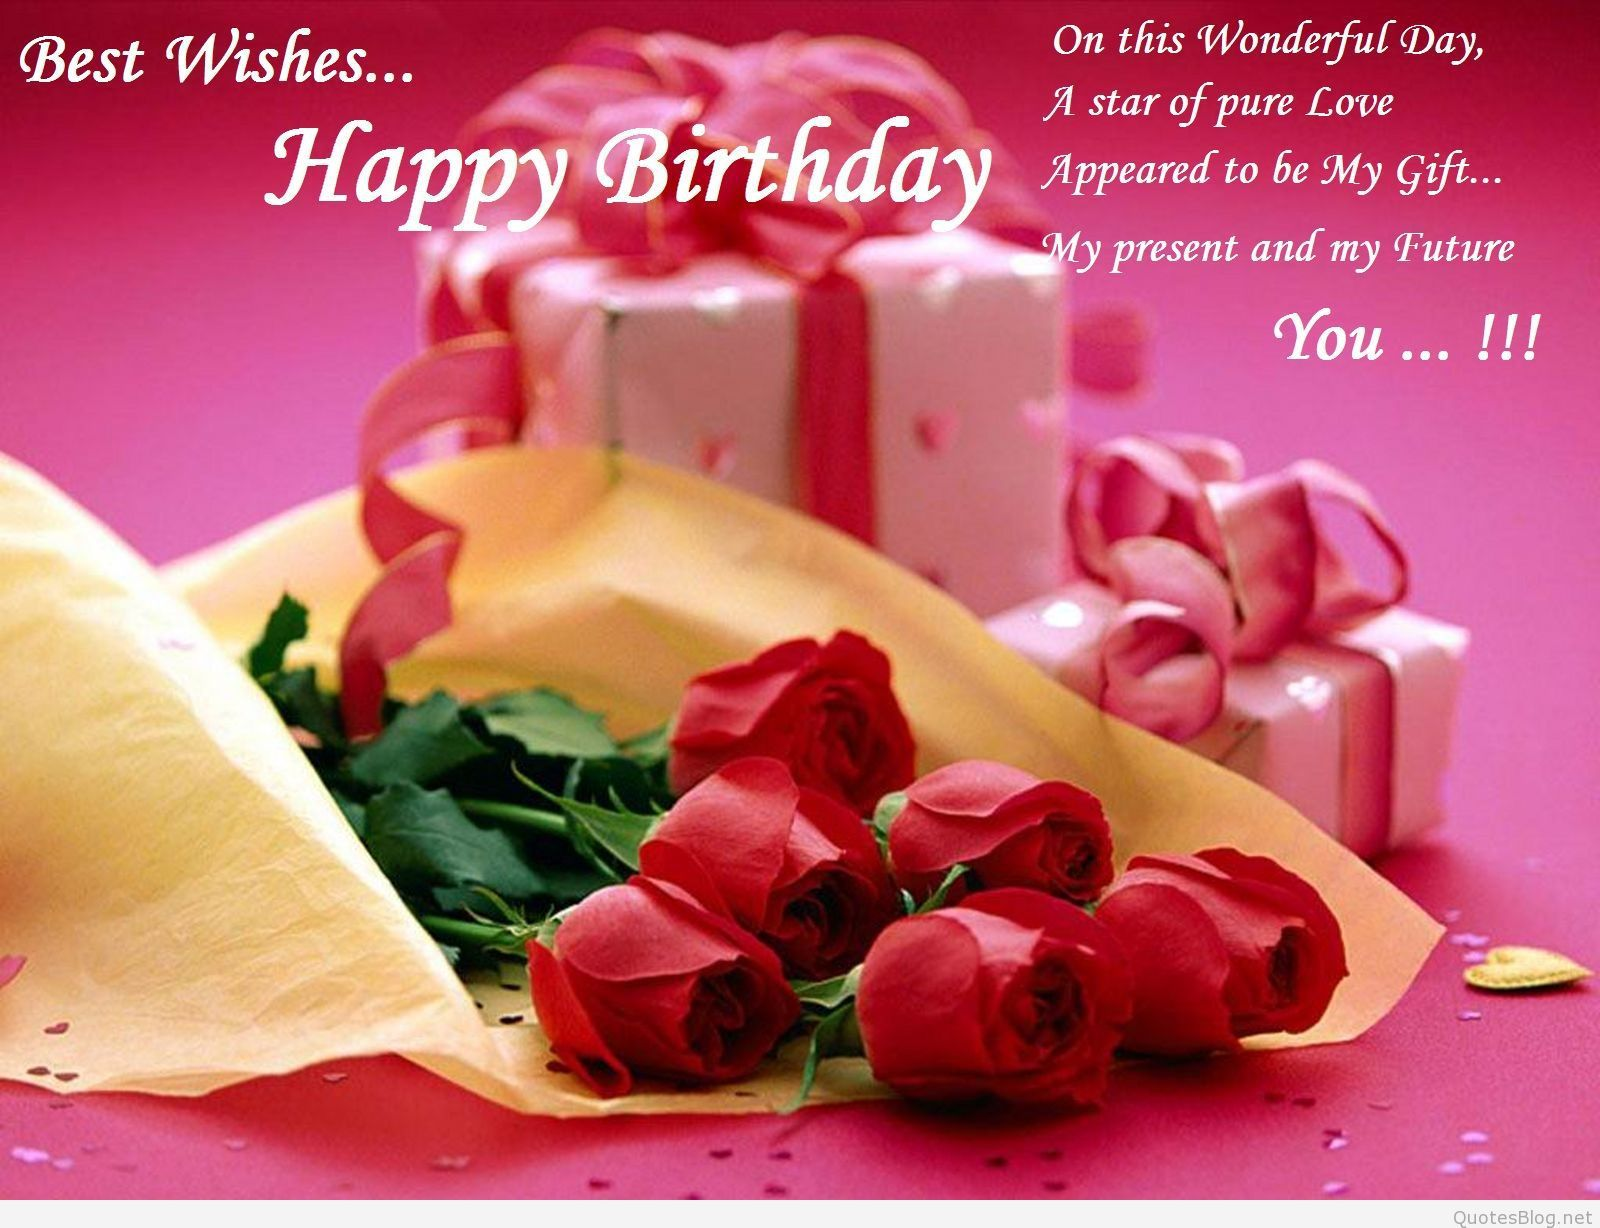 Happy Birthday Love Images Free Download Happy Birthday Hd Images